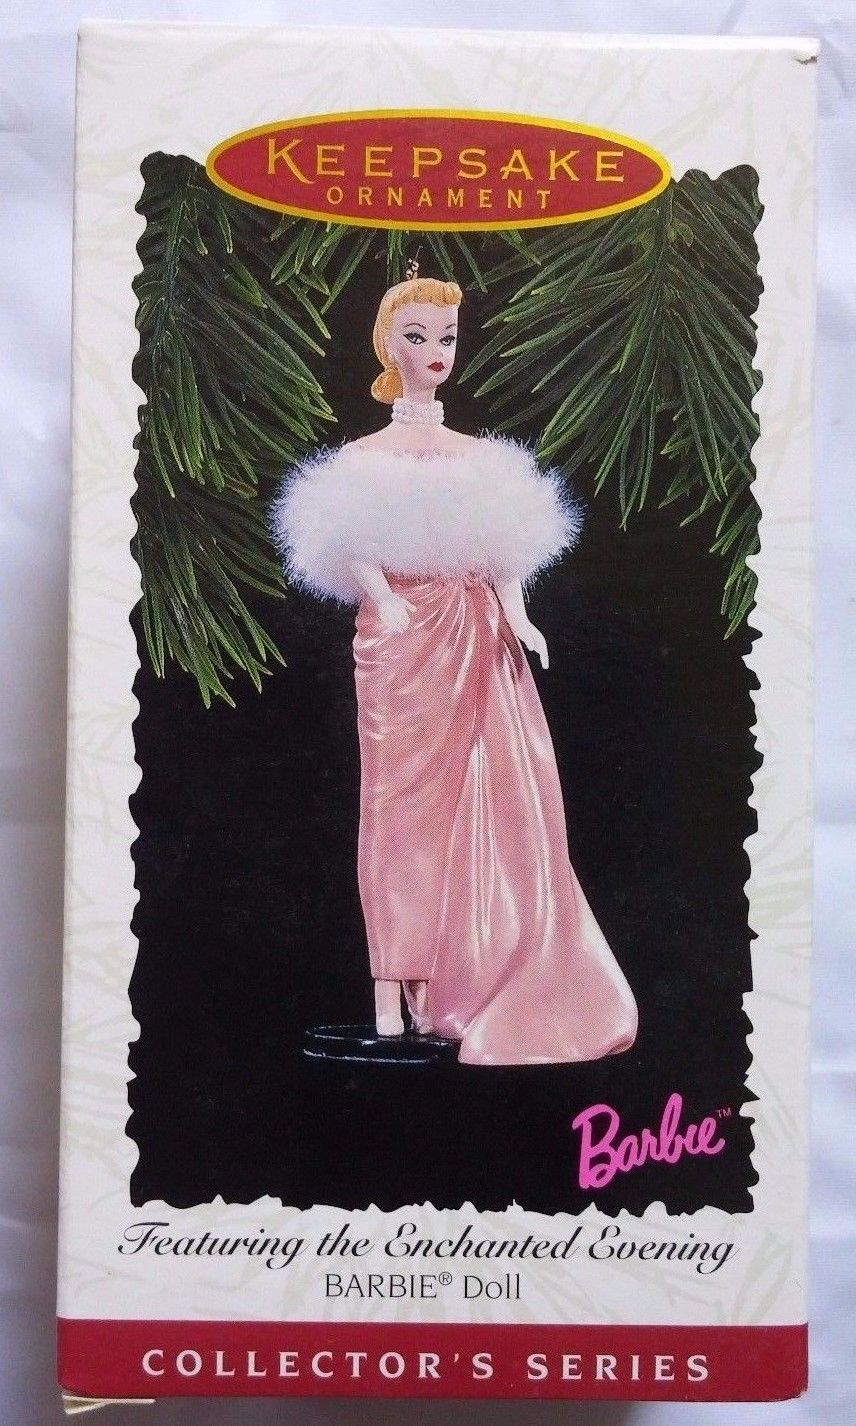 1996 Hallmark Holiday Barbie Enchanted Evening Ornament Doll Collector Series